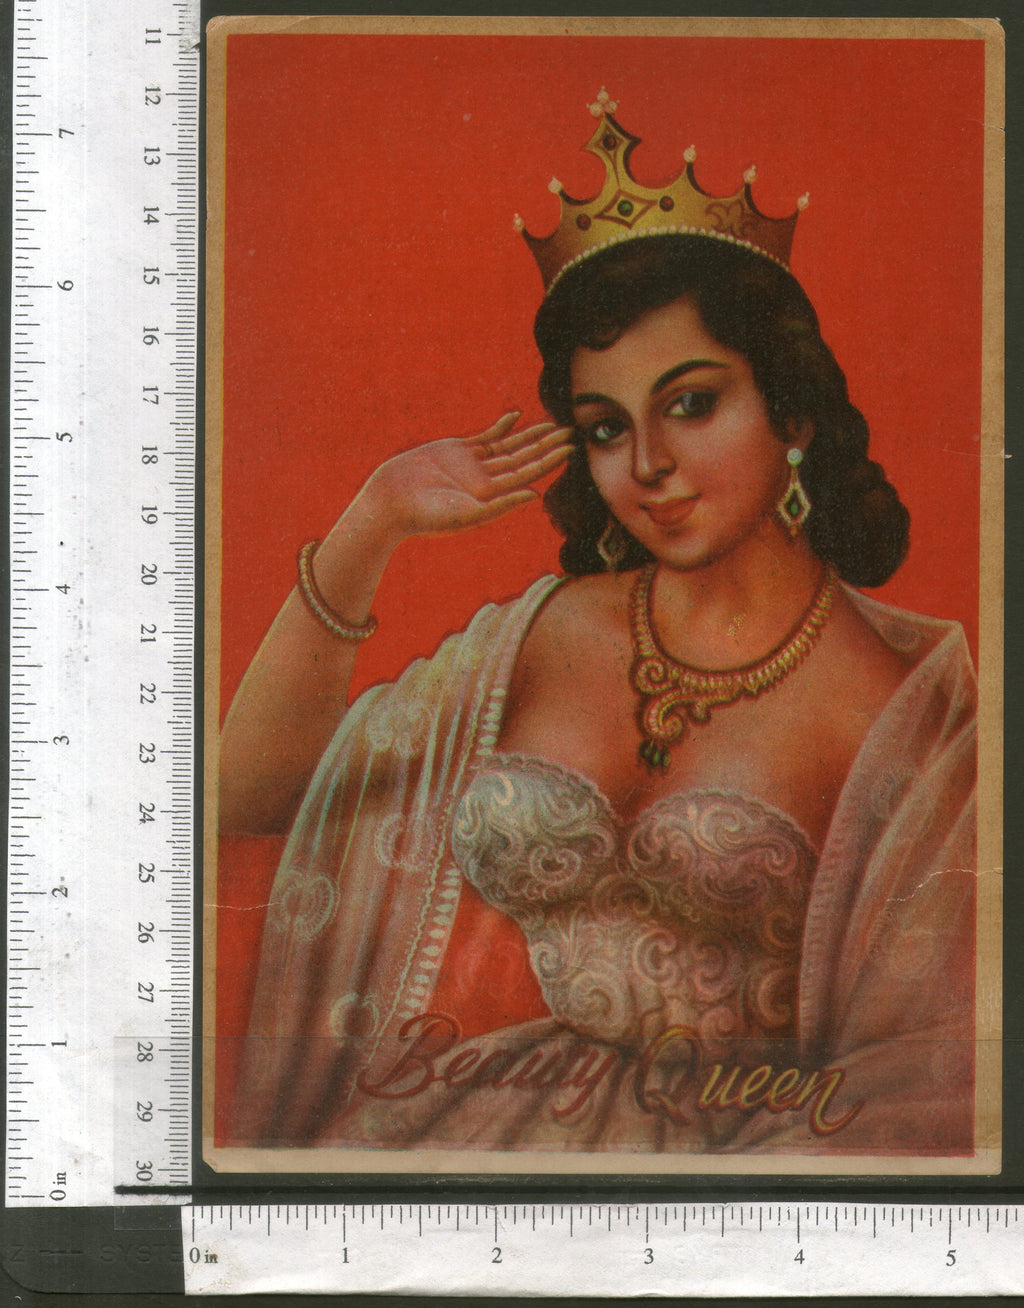 India Vintage Trade Label Beauty Queen Label Women # LBL121 - Phil India Stamps